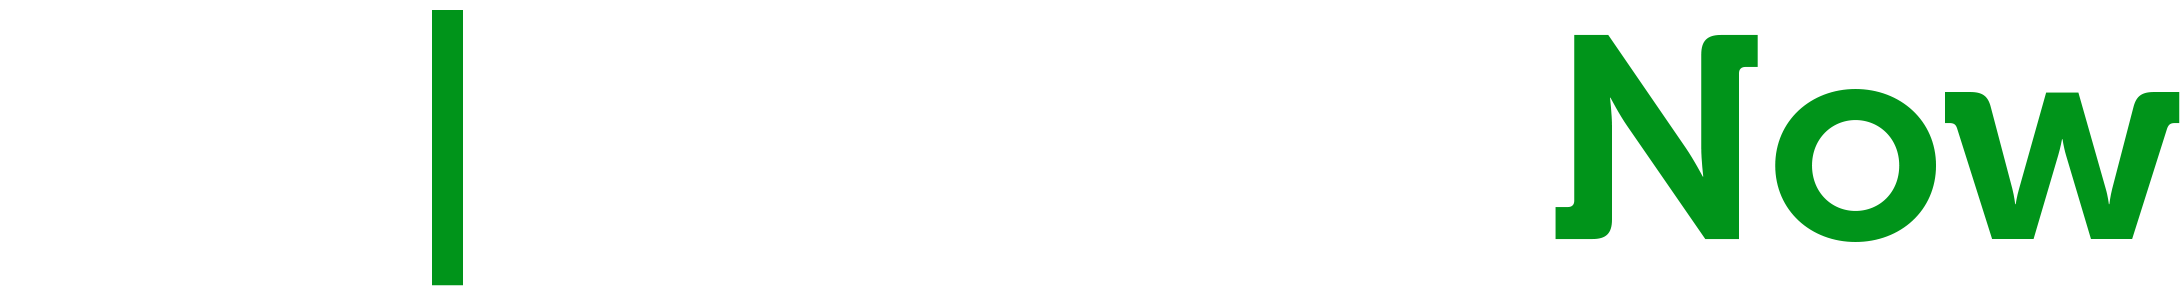 MyComplyNow